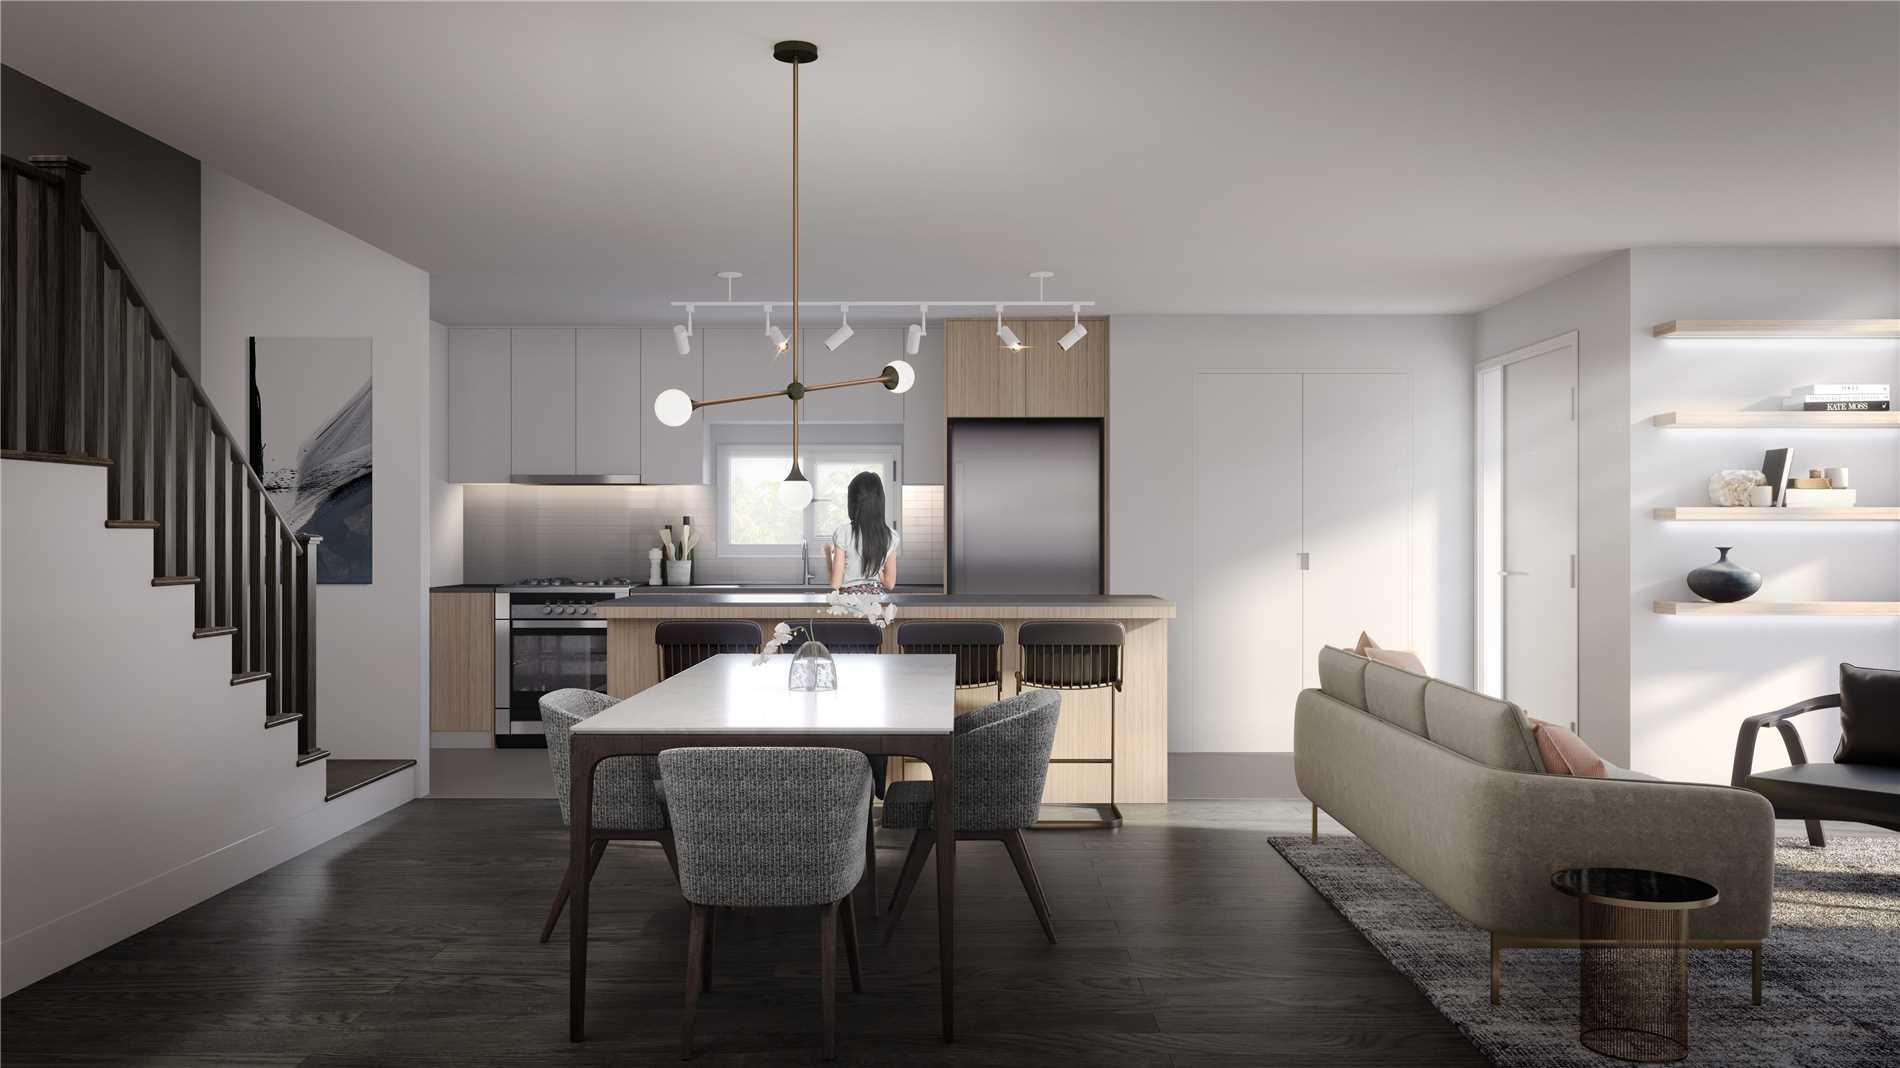 Th6 - 19 Allenbury Gdns